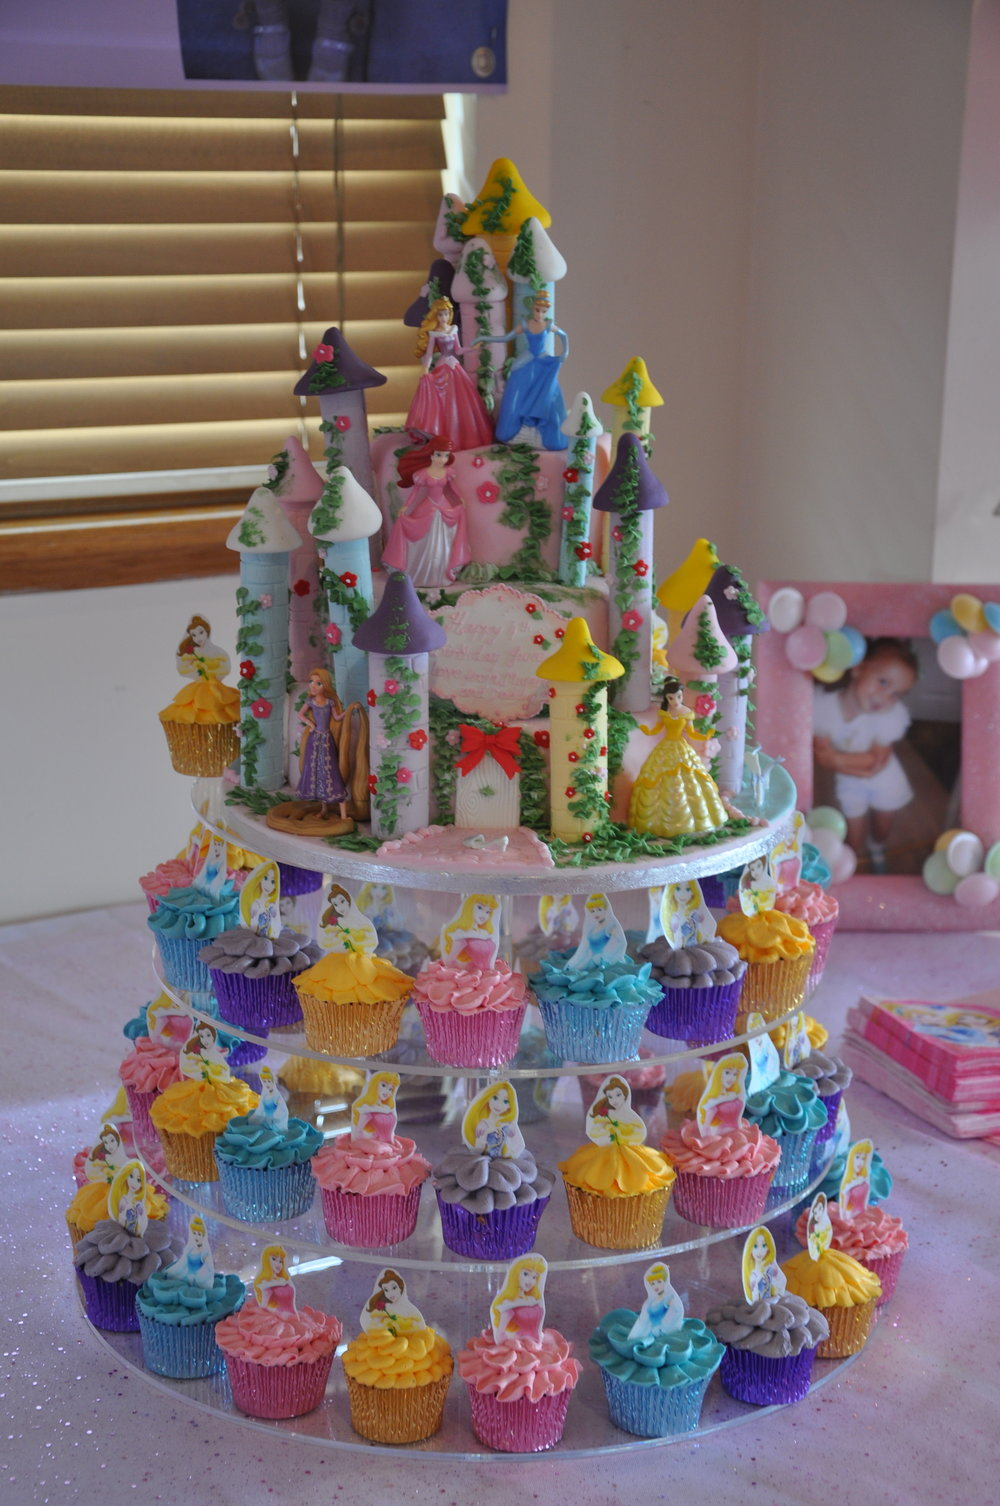 A castle for a princess - An amazing and wonderful centrepiece to your Princess party, this castle and Princess cupcakes make it all come together, creating a fairy tale cake for everyone to enjoy. The castle and cupcakes can be ordered together or separately.